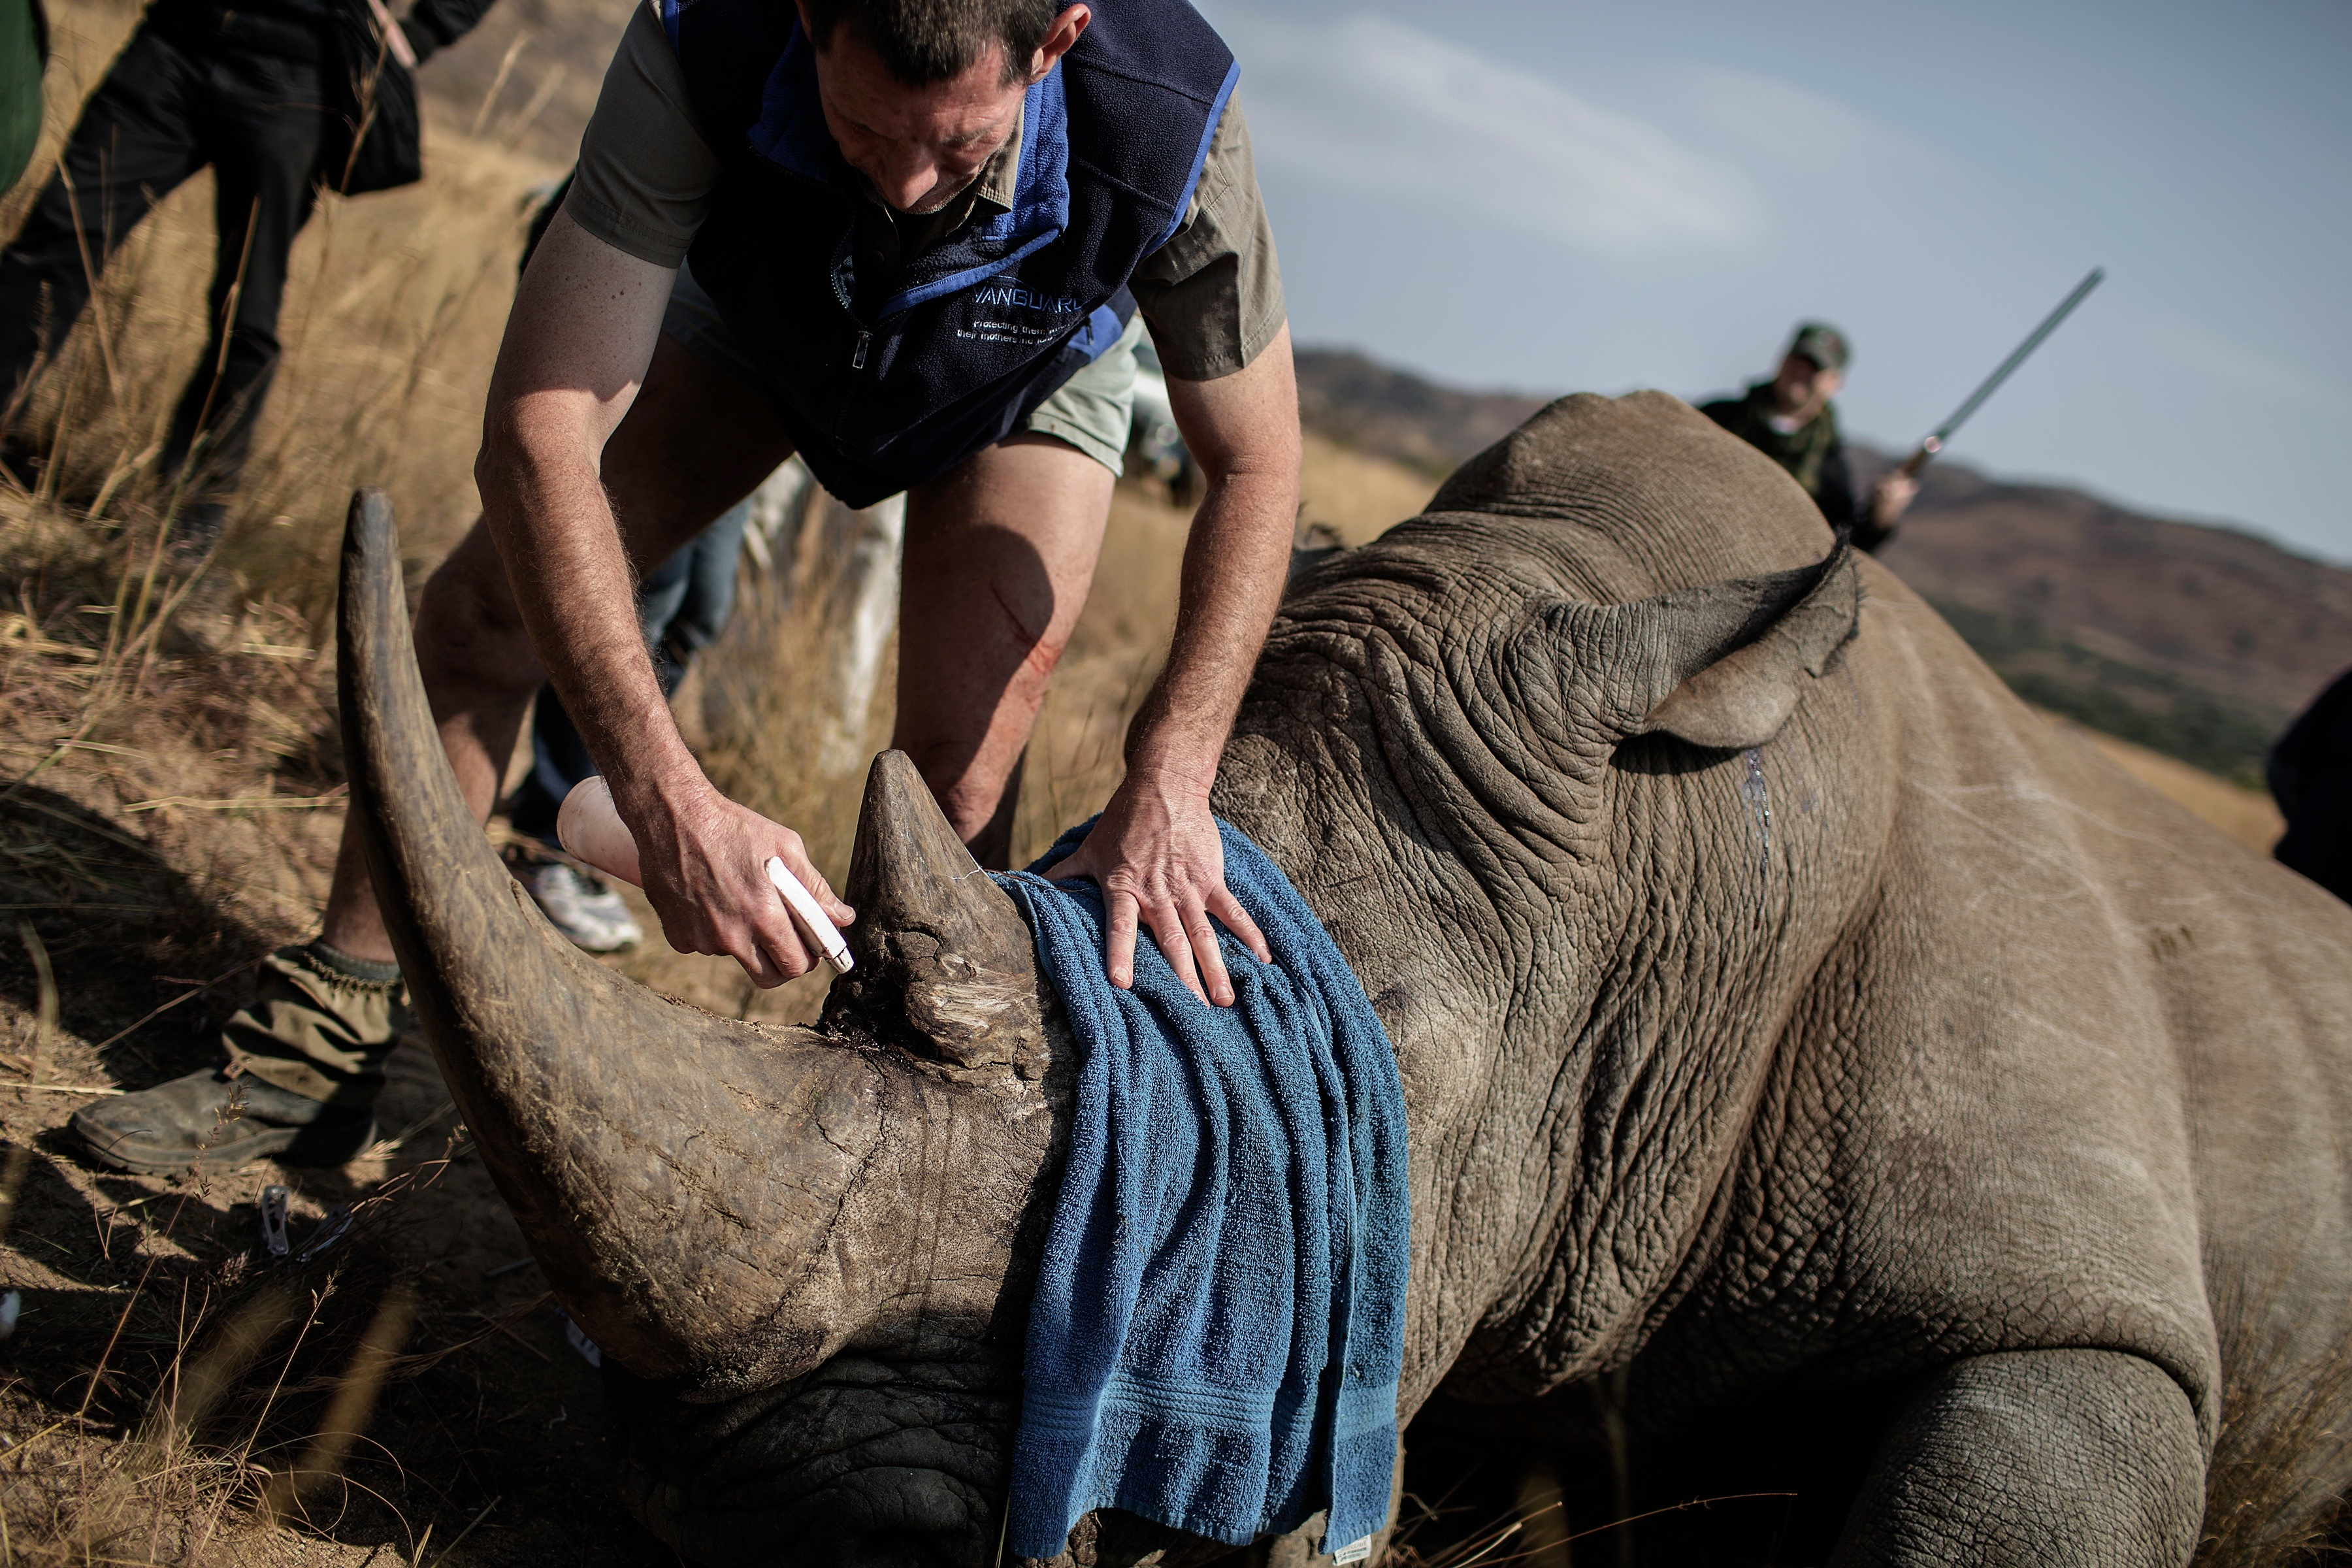 A vet attends to a tranquilized rhino, which will be microchipped during an operation on Sept. 19, 2016, at the Pilanesberg National Park in the North West province, in South Africa. Rhino populations are threatened by poaching to feed China's voracious demand for rhino horn